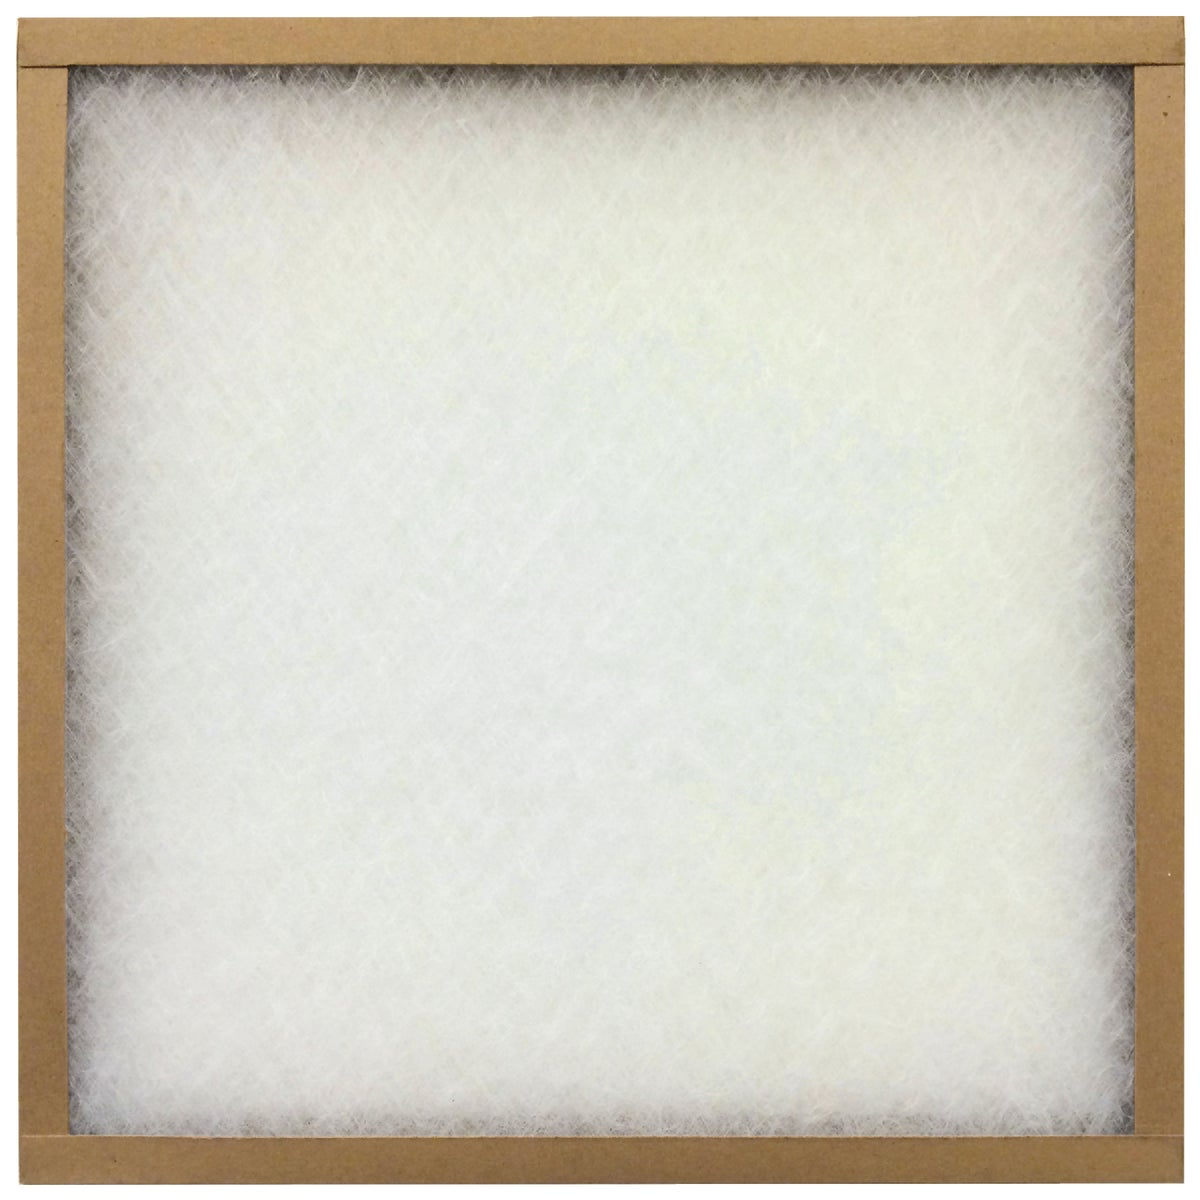 14X24X1 FBRGL AIR FILTER - 10055.011424 by Flanders Corp